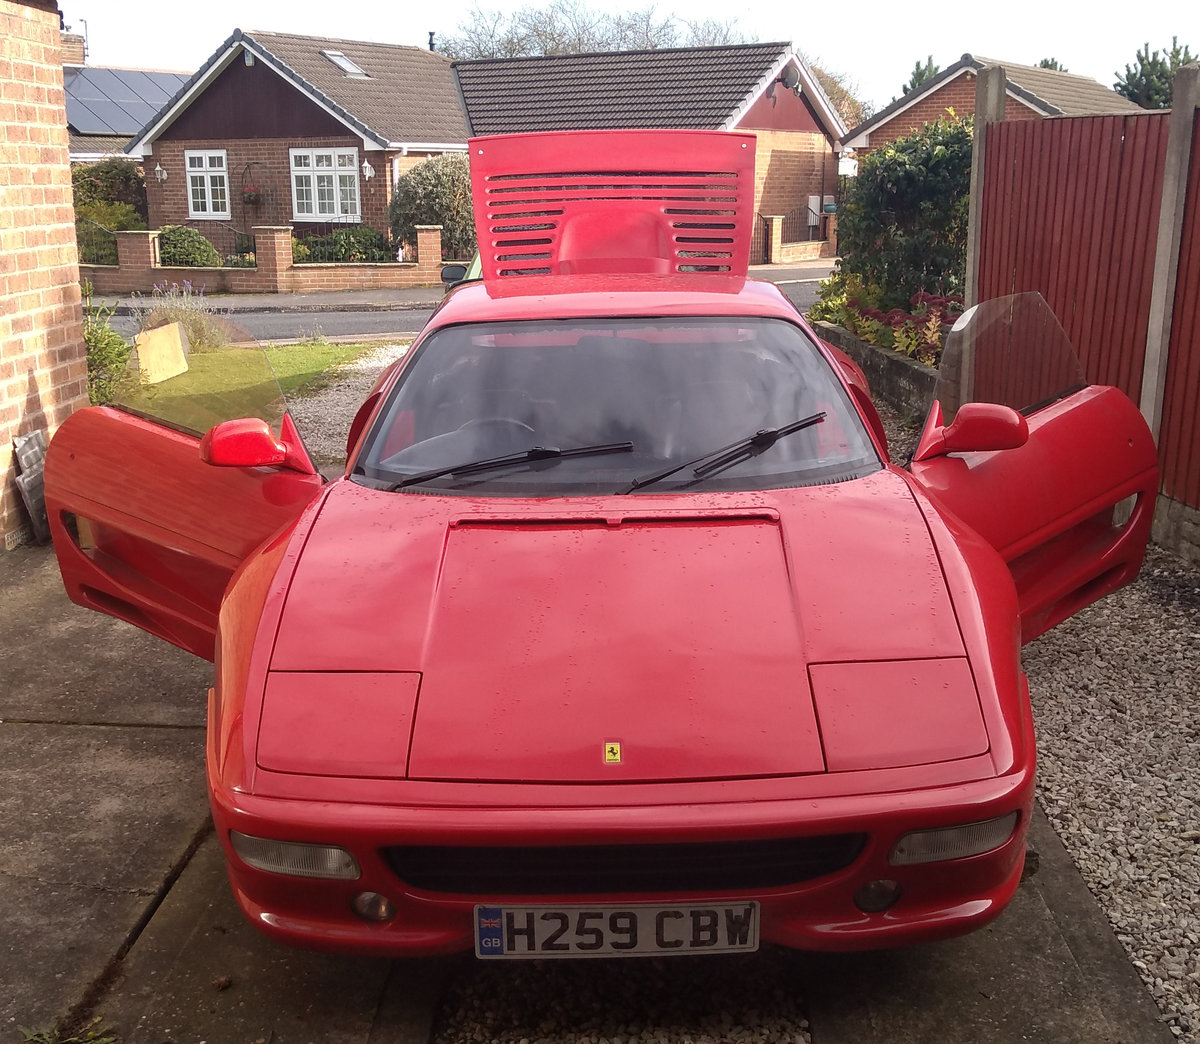 1990 Toyota Mr2 Ferrari 355 Kit Car Project Sold Car And Classic